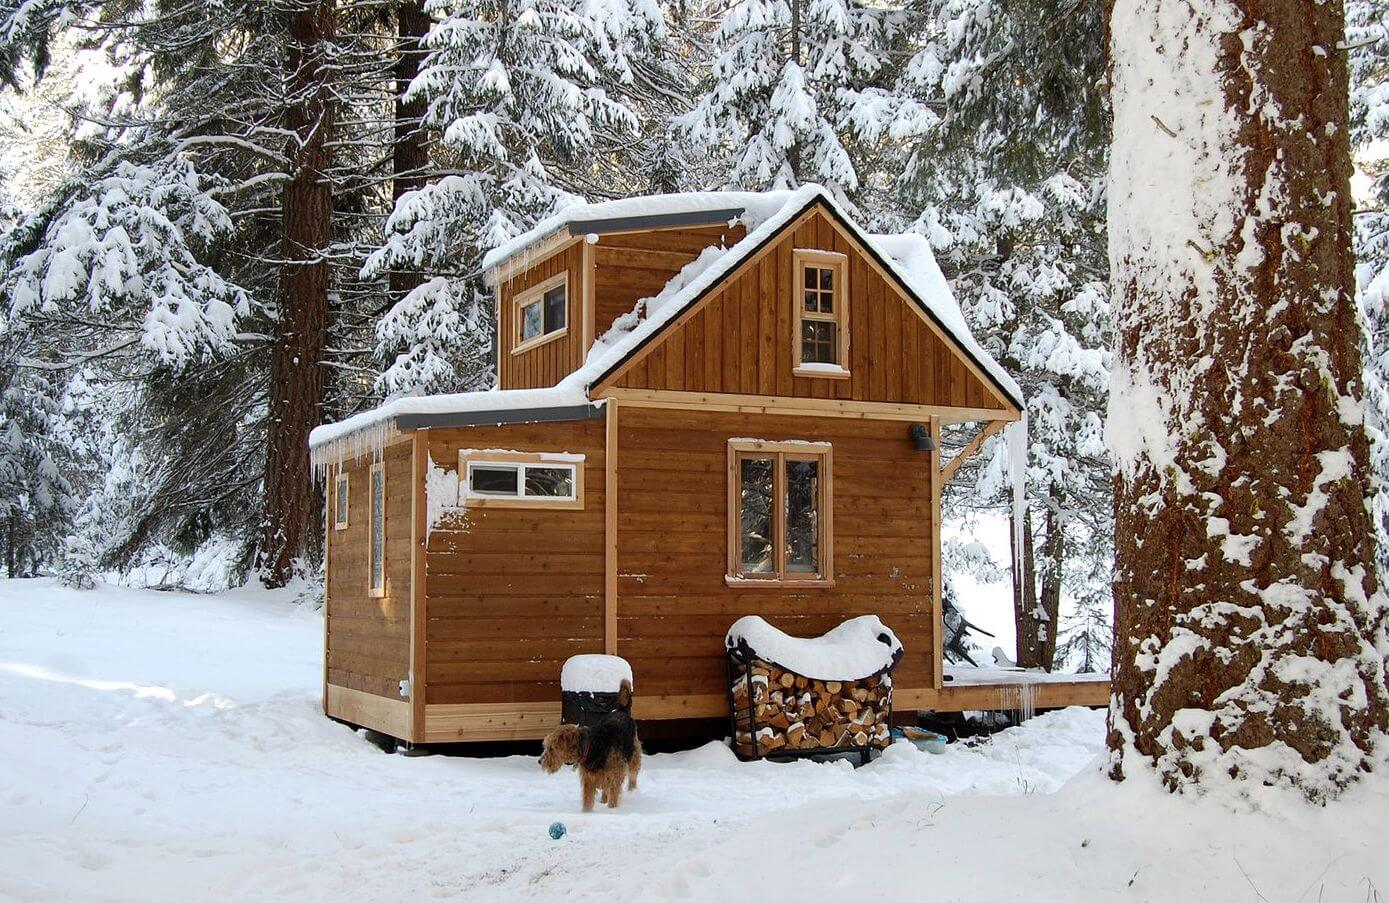 HUNT FOR MUSHROOMS IN THIS SCENIC GLAMPING SITE